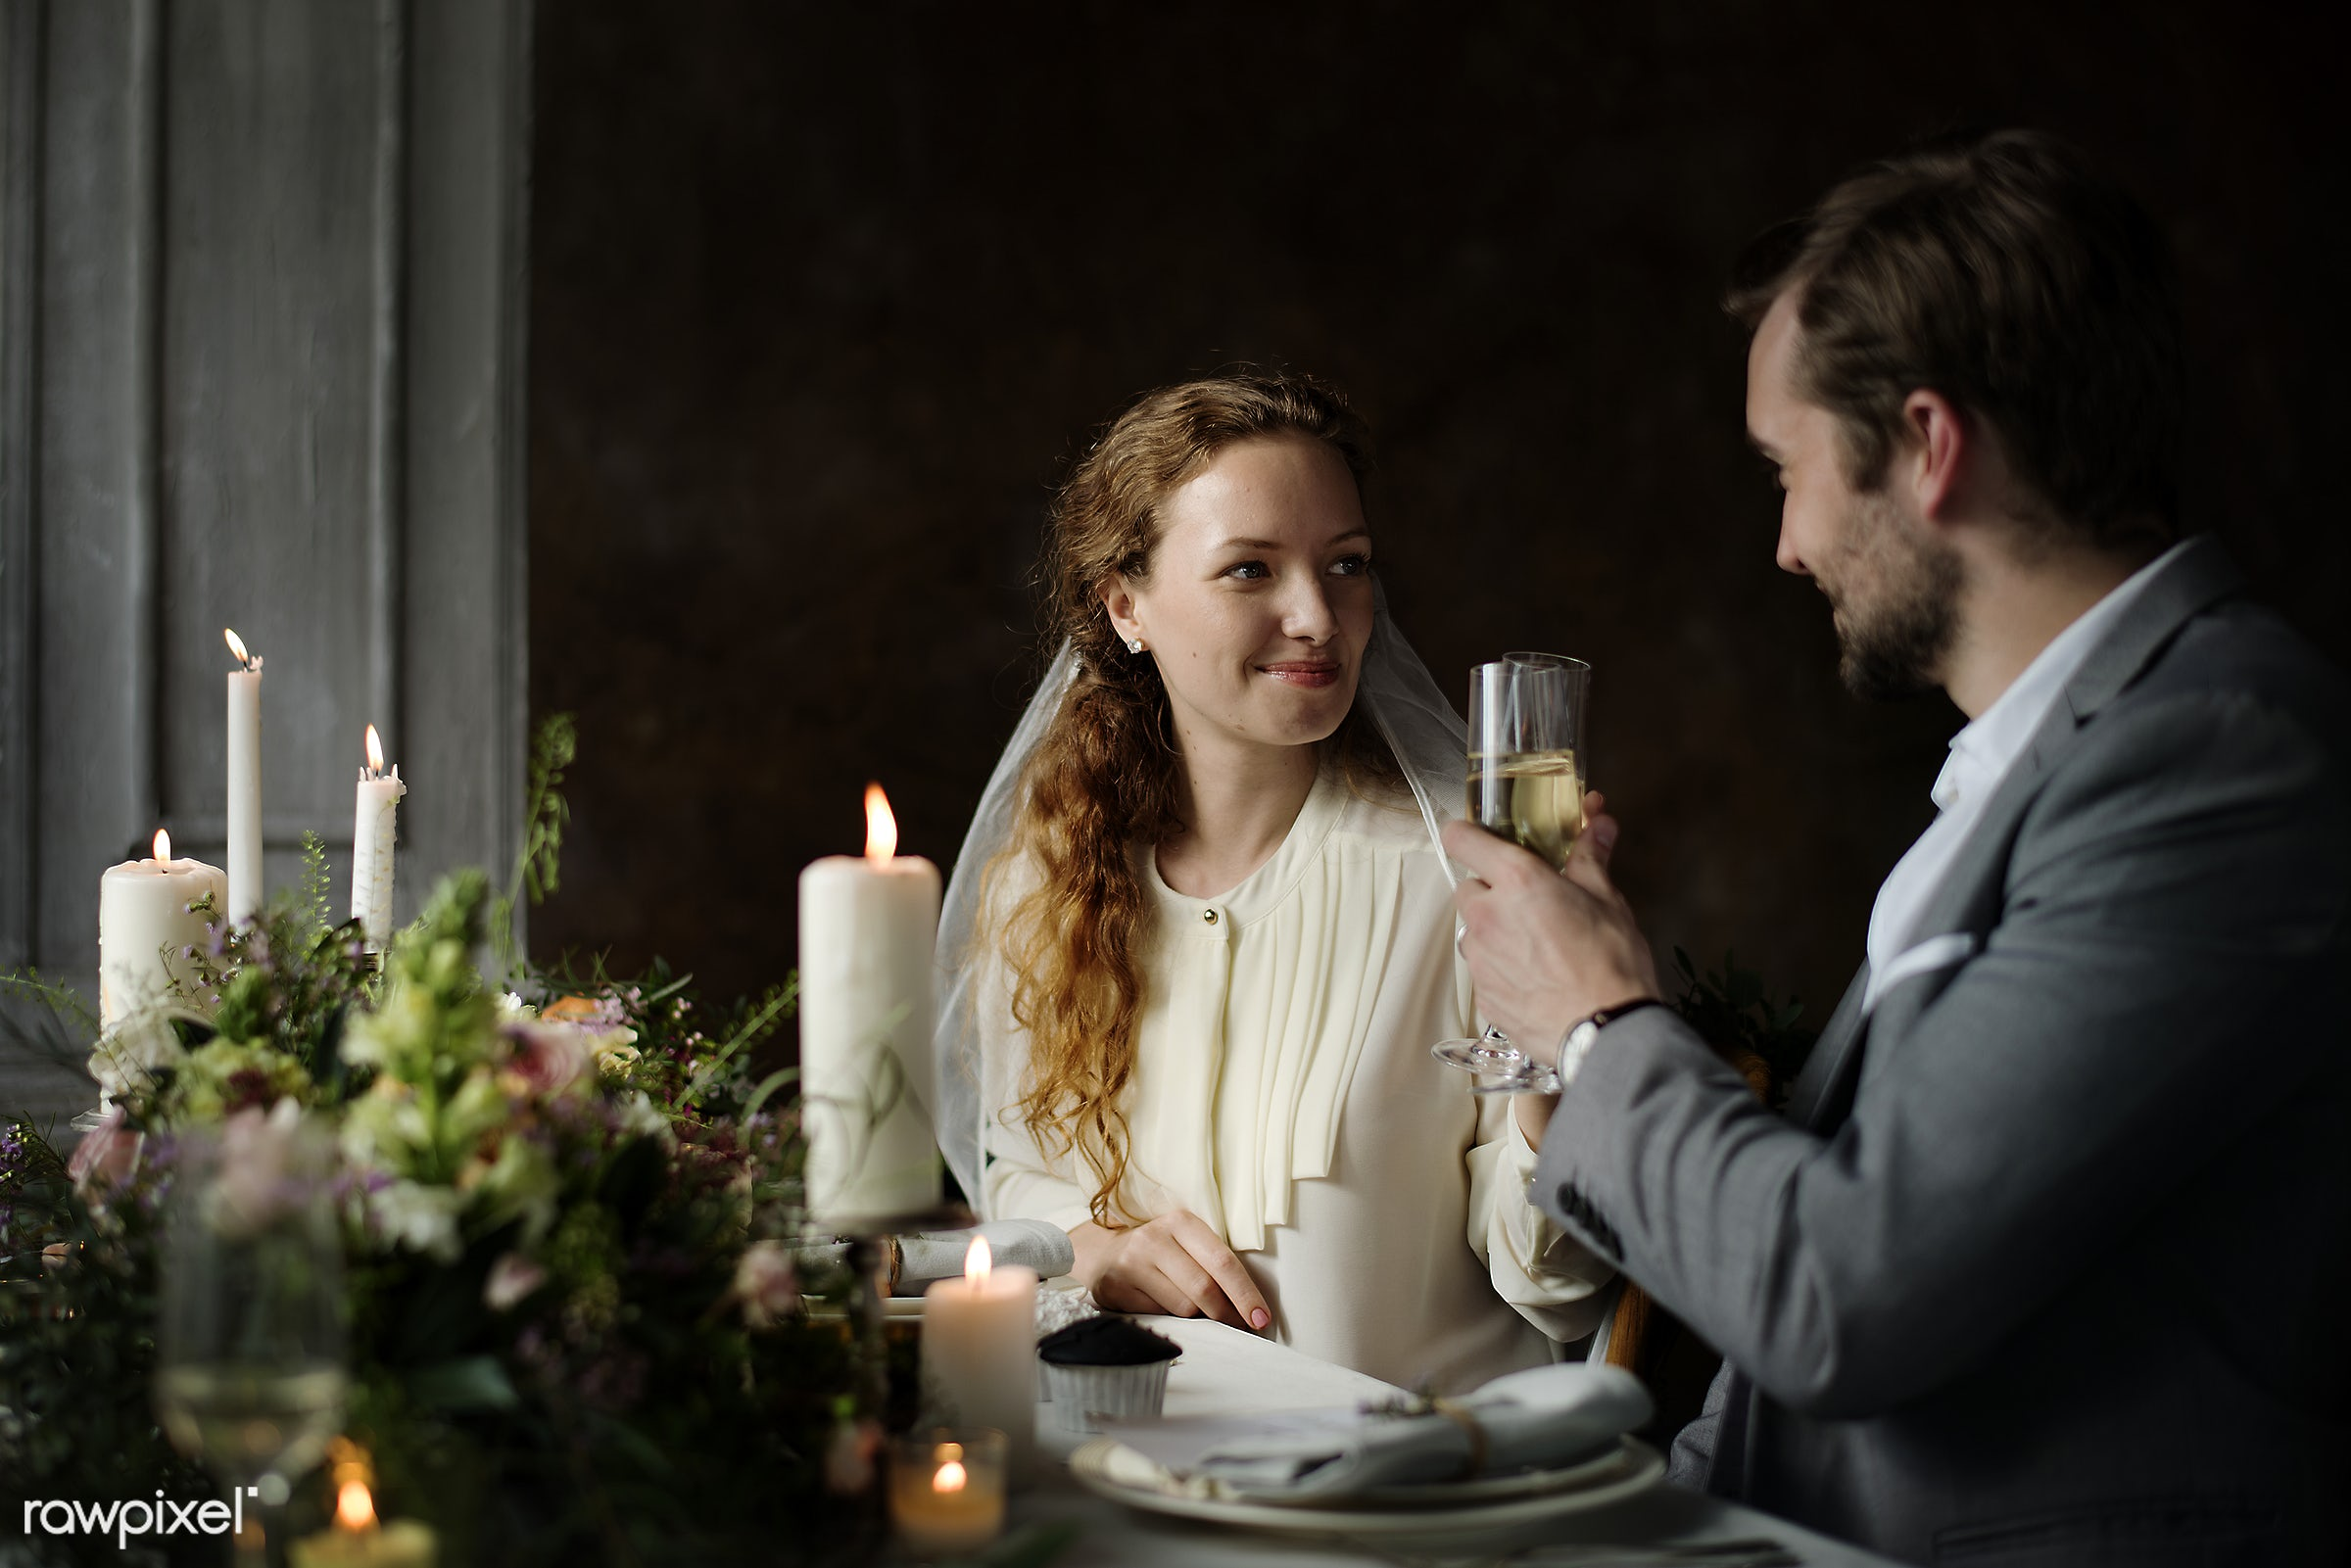 Couple at the wedding day reception table - couple, partners, married, marriage, wedding, celebration, event, table,...